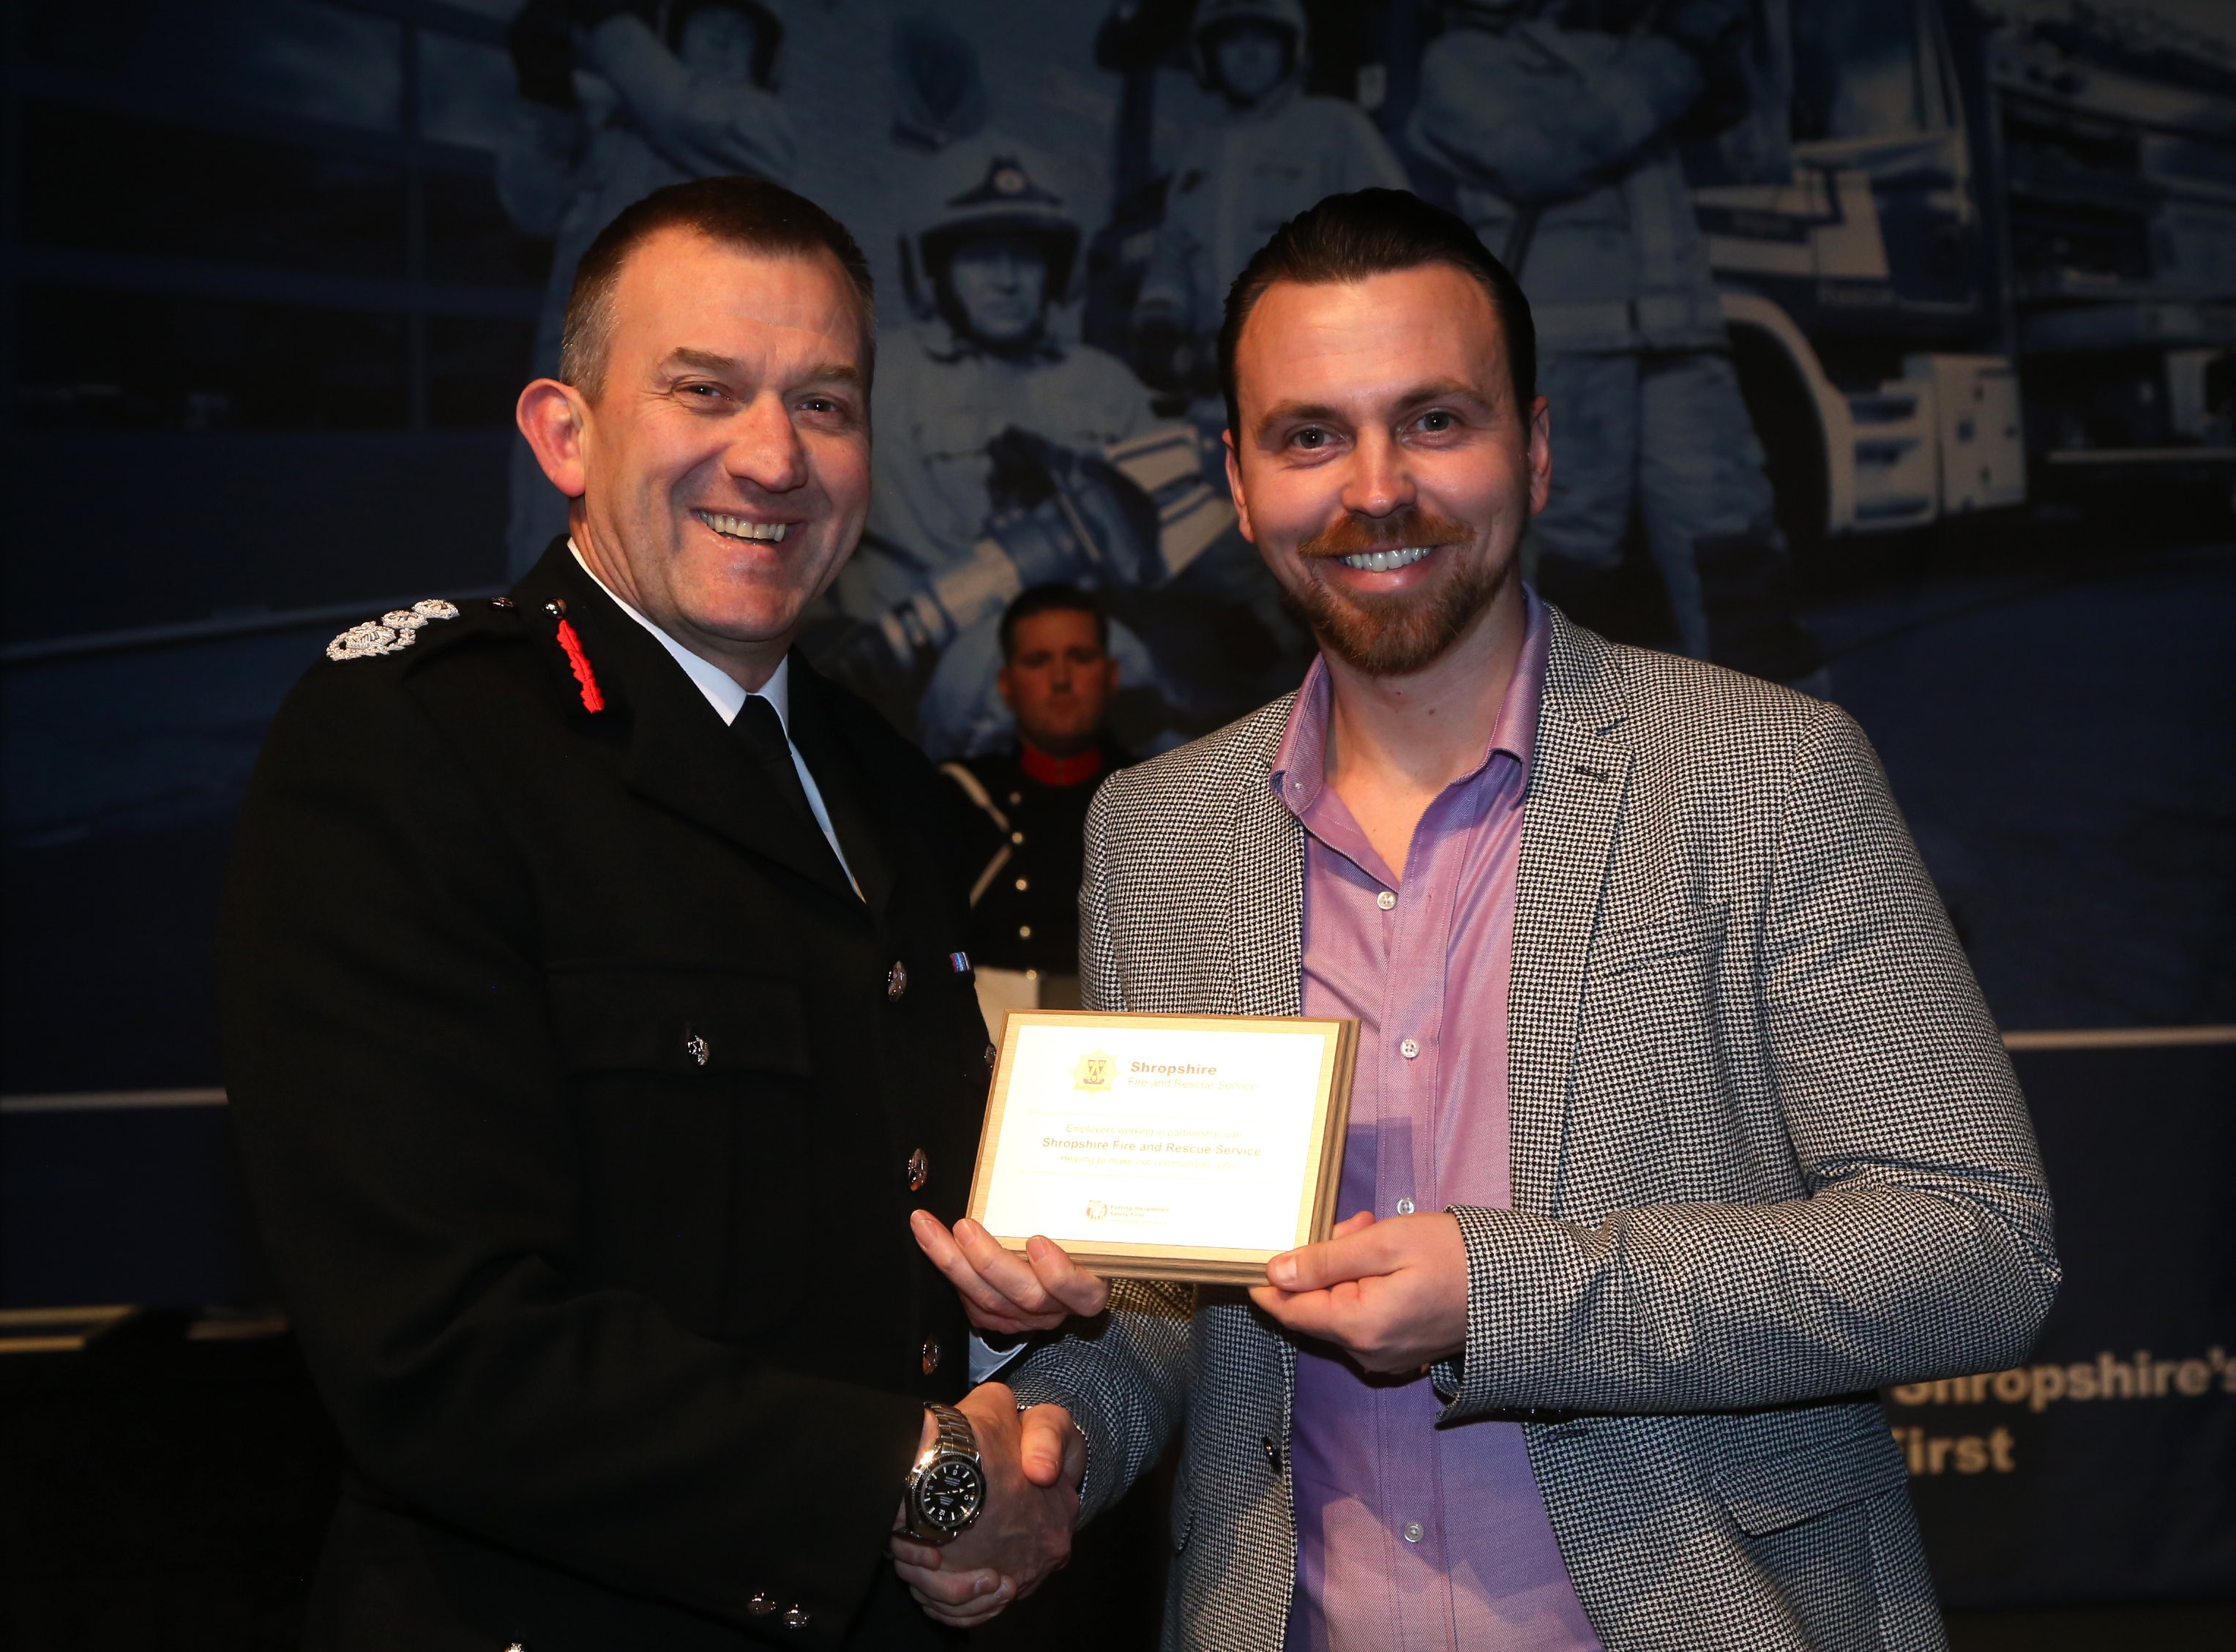 Tom Pain, from Cleobury Mortimer golf club, with the Chief Fire Officer